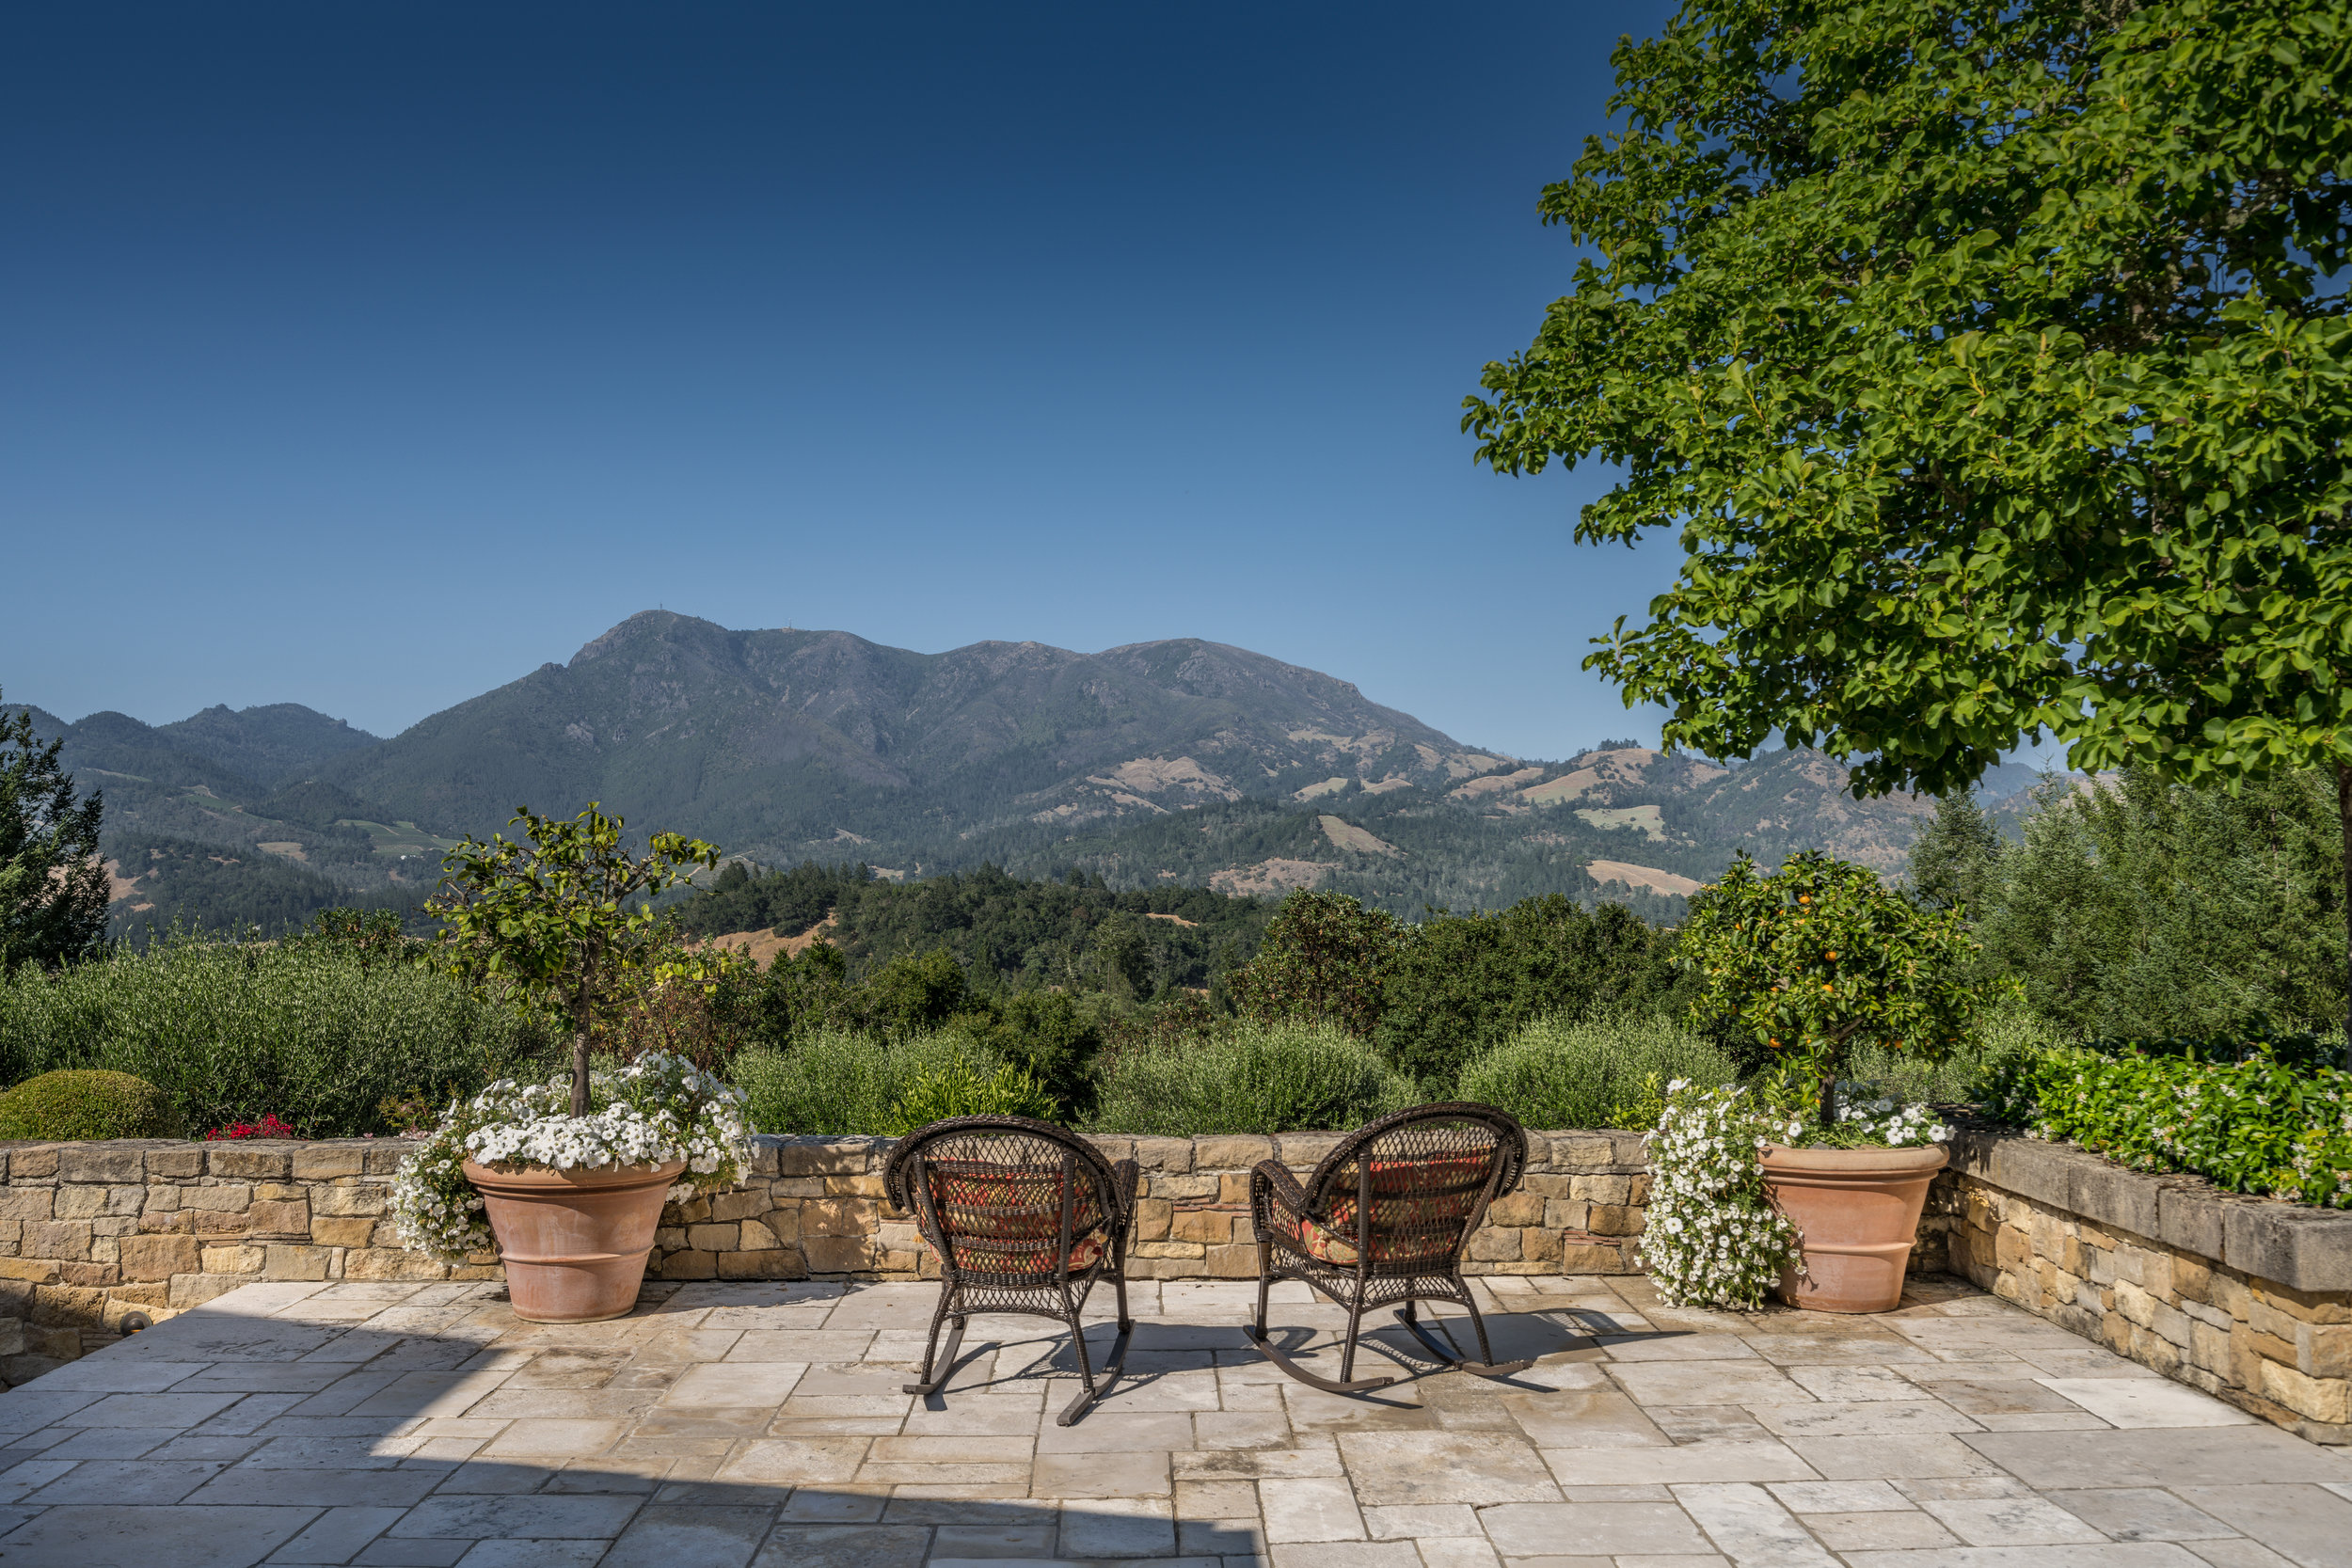 The Villa lends itself to private outdoor entertaining, all overlooking Mt. St. Helena.